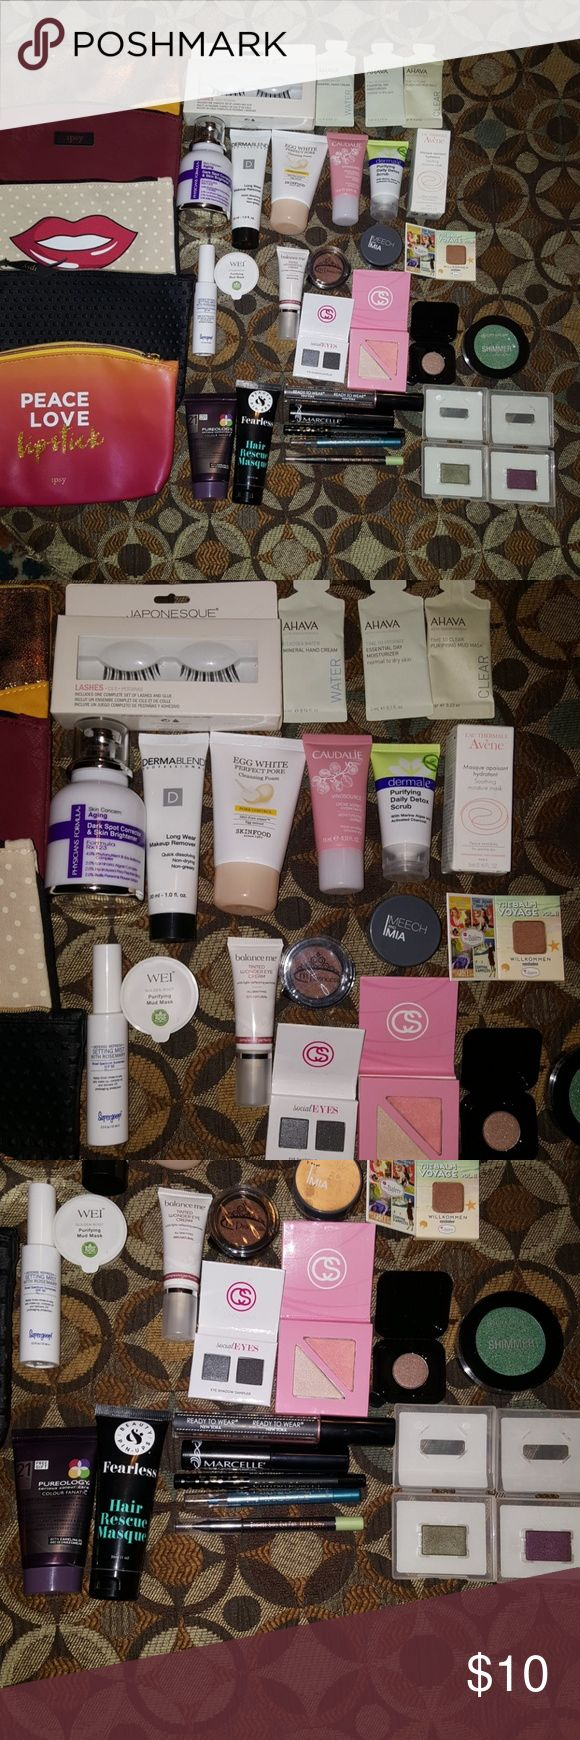 Beauty Bundle - Pick 6 for $10 * Comment below 5 Different Ipsy Bags/Fake lashes/3 pack Ahava products/Physicians Formula Darkspot corrector/Dermablend makeup remover/EggWhite pore control/Caudalie moisturizing sorbet/dermaE detox scrub/Avene moisture mask/Supergoop Setting mist/Wei mud mask/mPrincess eyeshadow Chesnut/Mercy&Mia loose shadow in shimmer coral/the balm eyeshadow/Coastal Scents in social eyes/Coastal Scents blush&bronzer duo/POP shadow/Shimmer shadow/Pureology Conditioning…